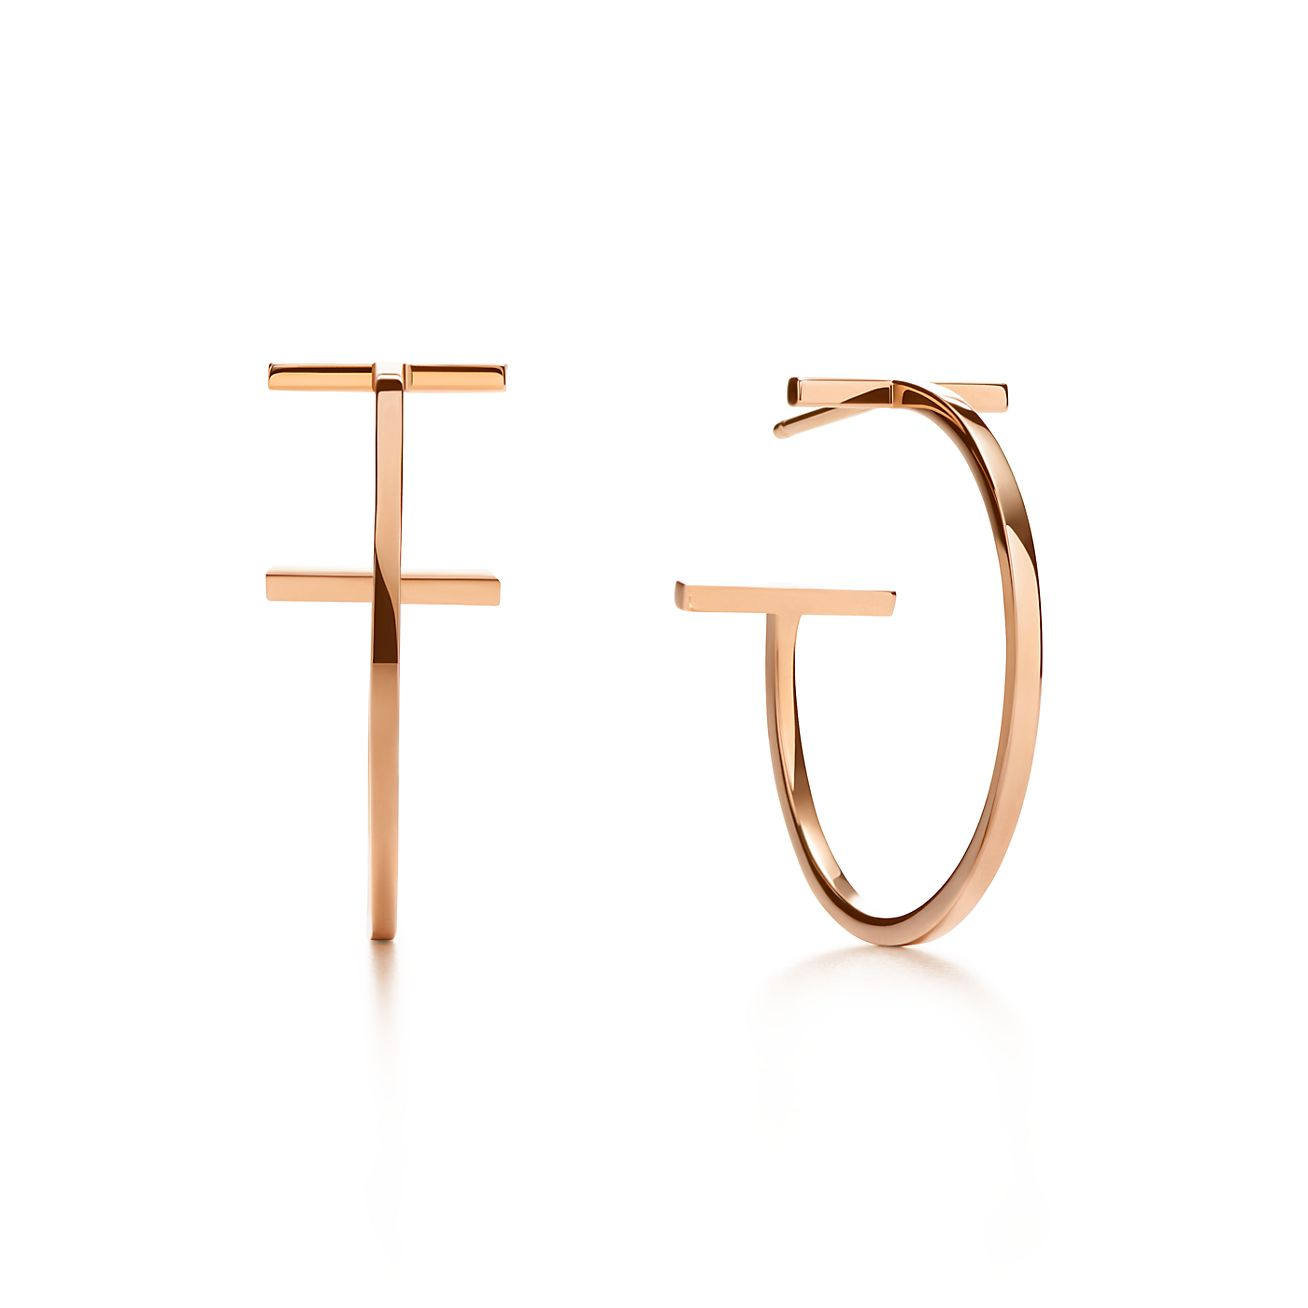 Tiffany t wire earrings